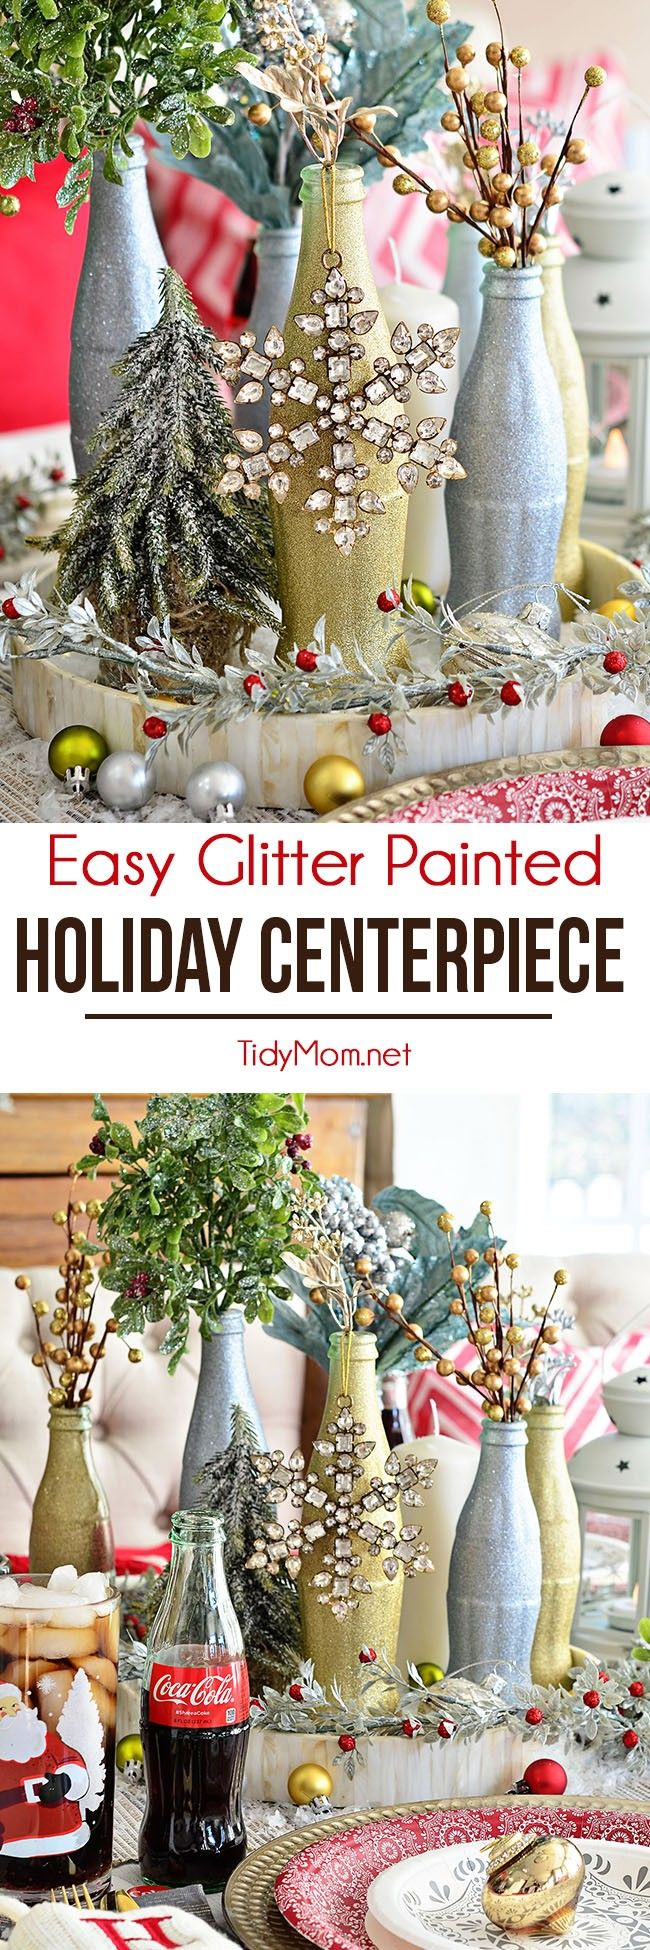 Looking for a simple DIY project to glam up your Christmas Table? Our partner Cheryl shares a stress-free and inexpensive  Glitter Painted Holiday Centerpiece tutorial using recycled Coca-Cola bottles.